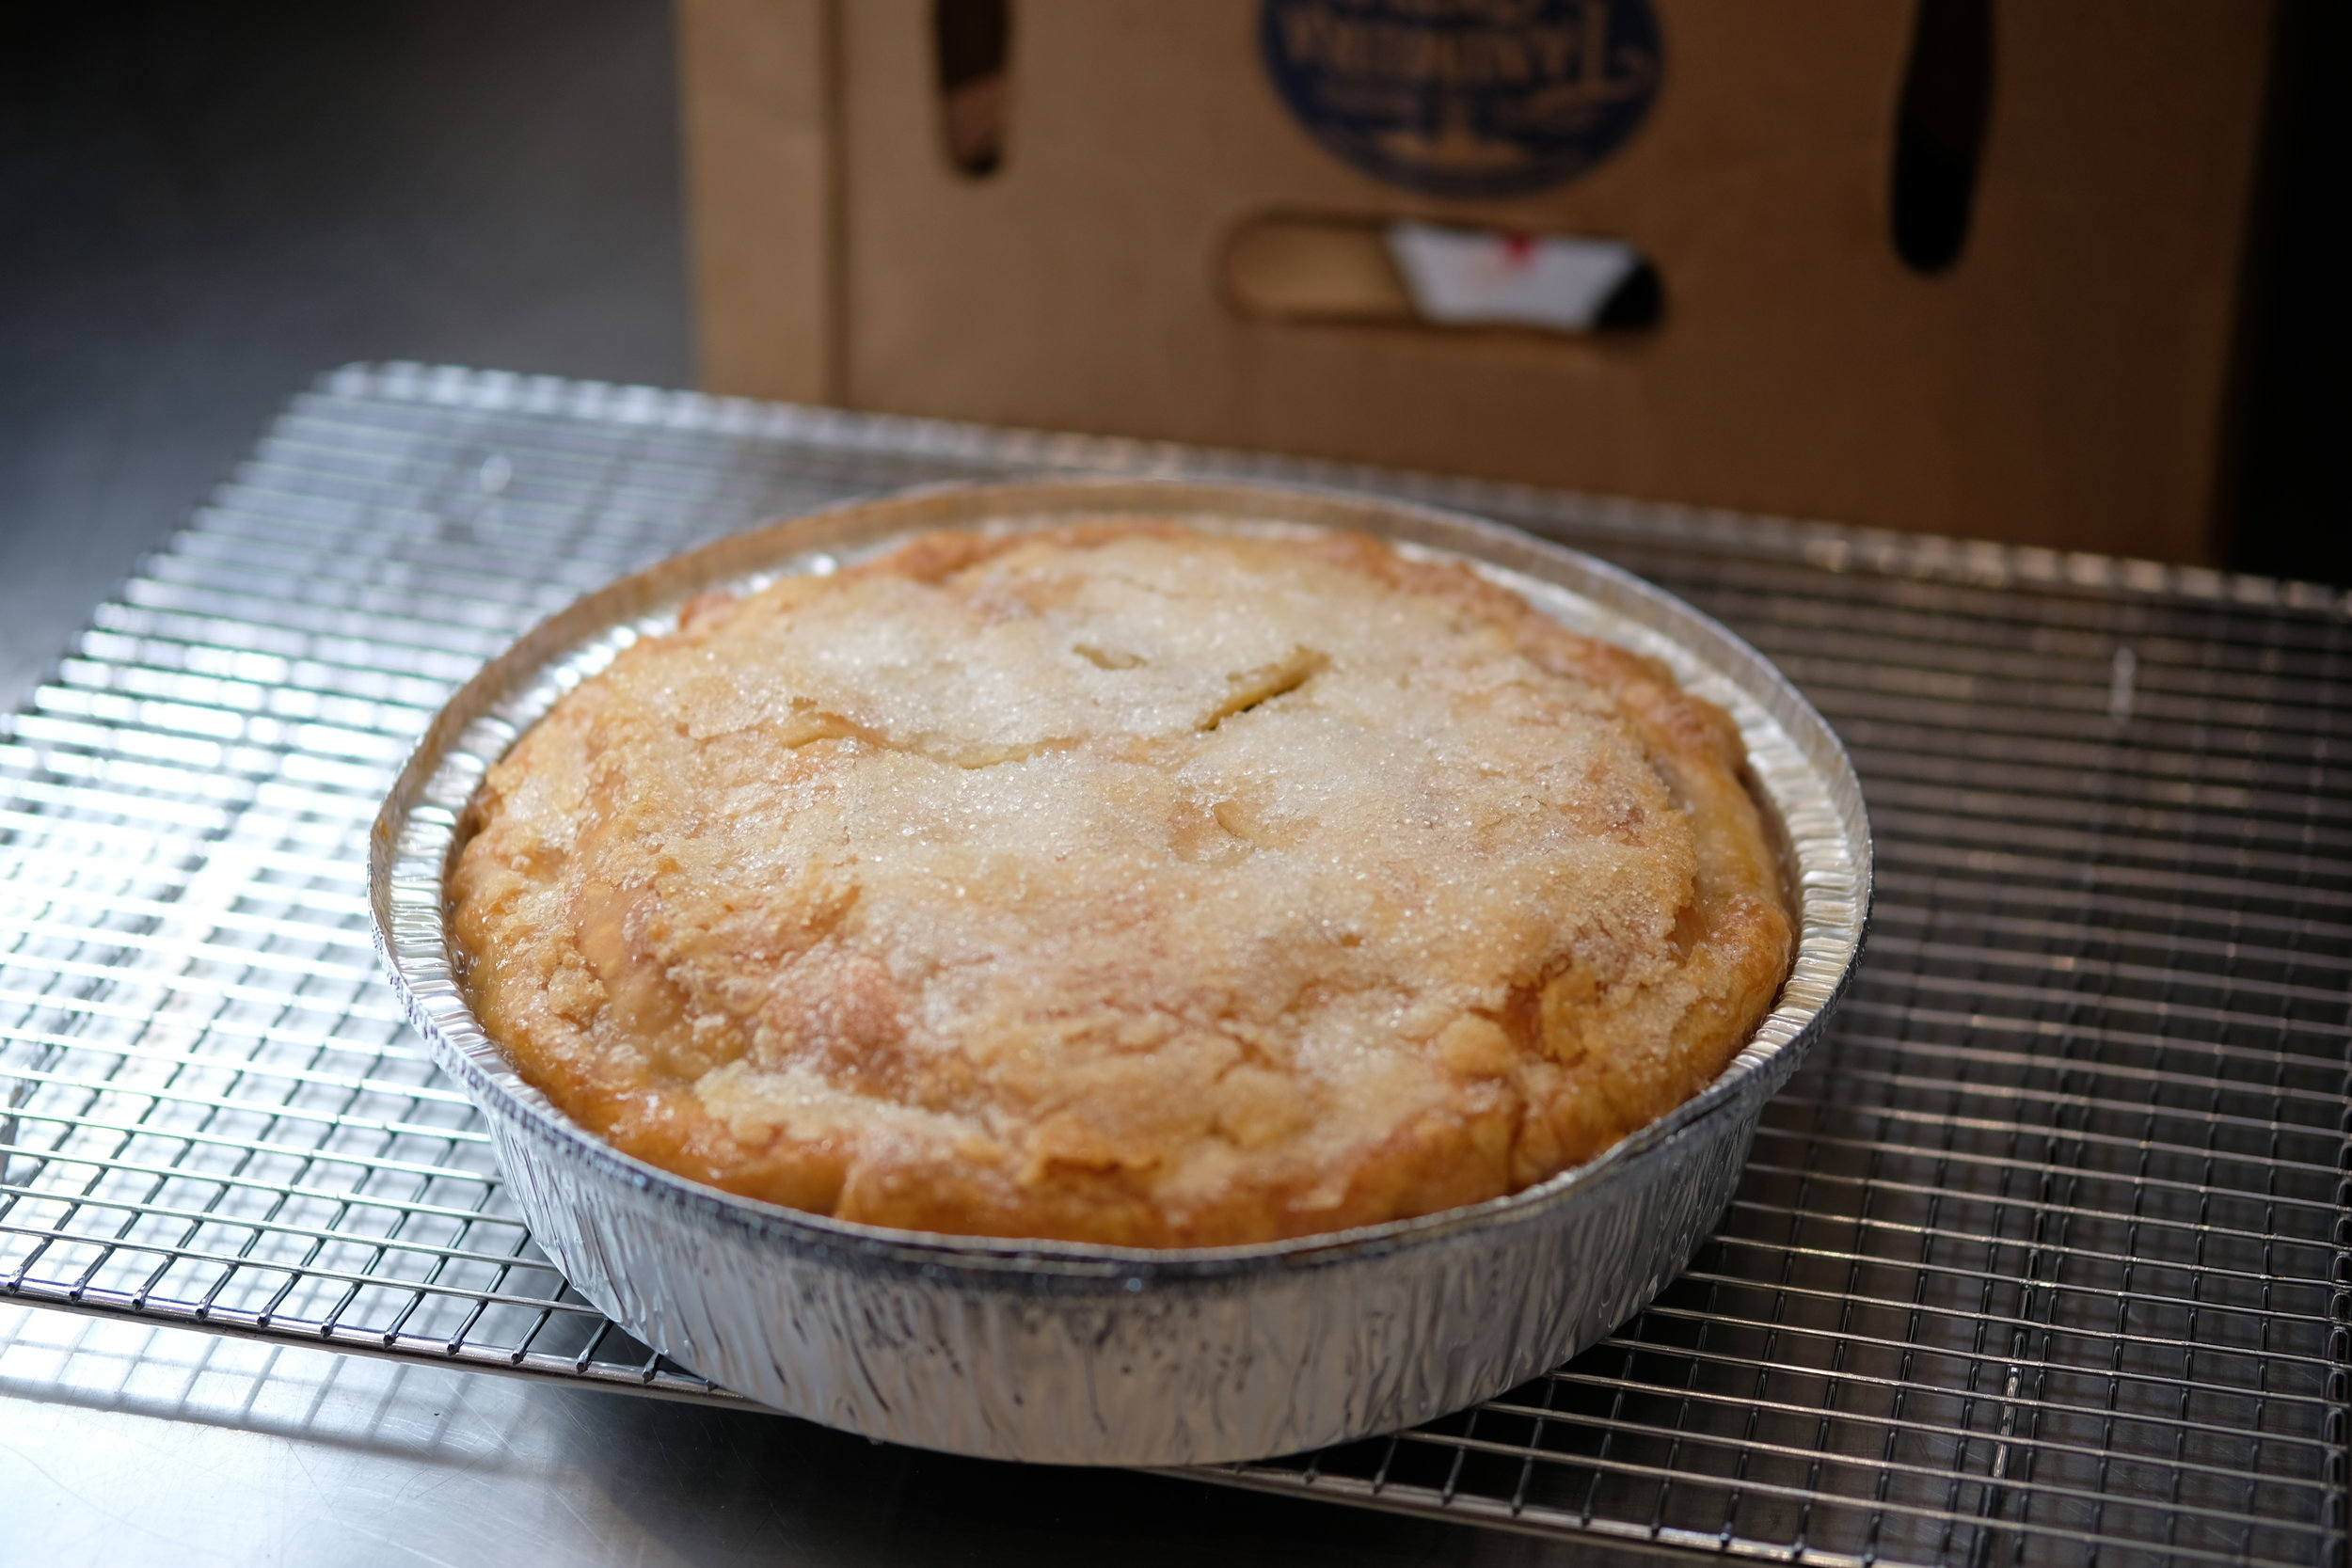 Fresh baked Pear Pie